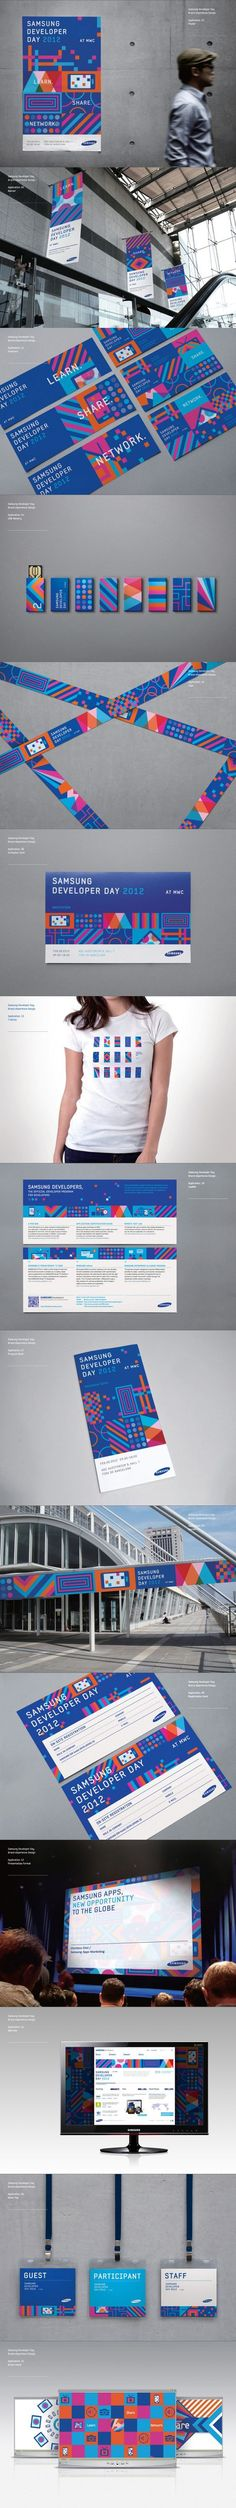 Samsung Developers Branding on Behance | Fivestar Branding – Design and Branding Agency & Inspiration Gallery: